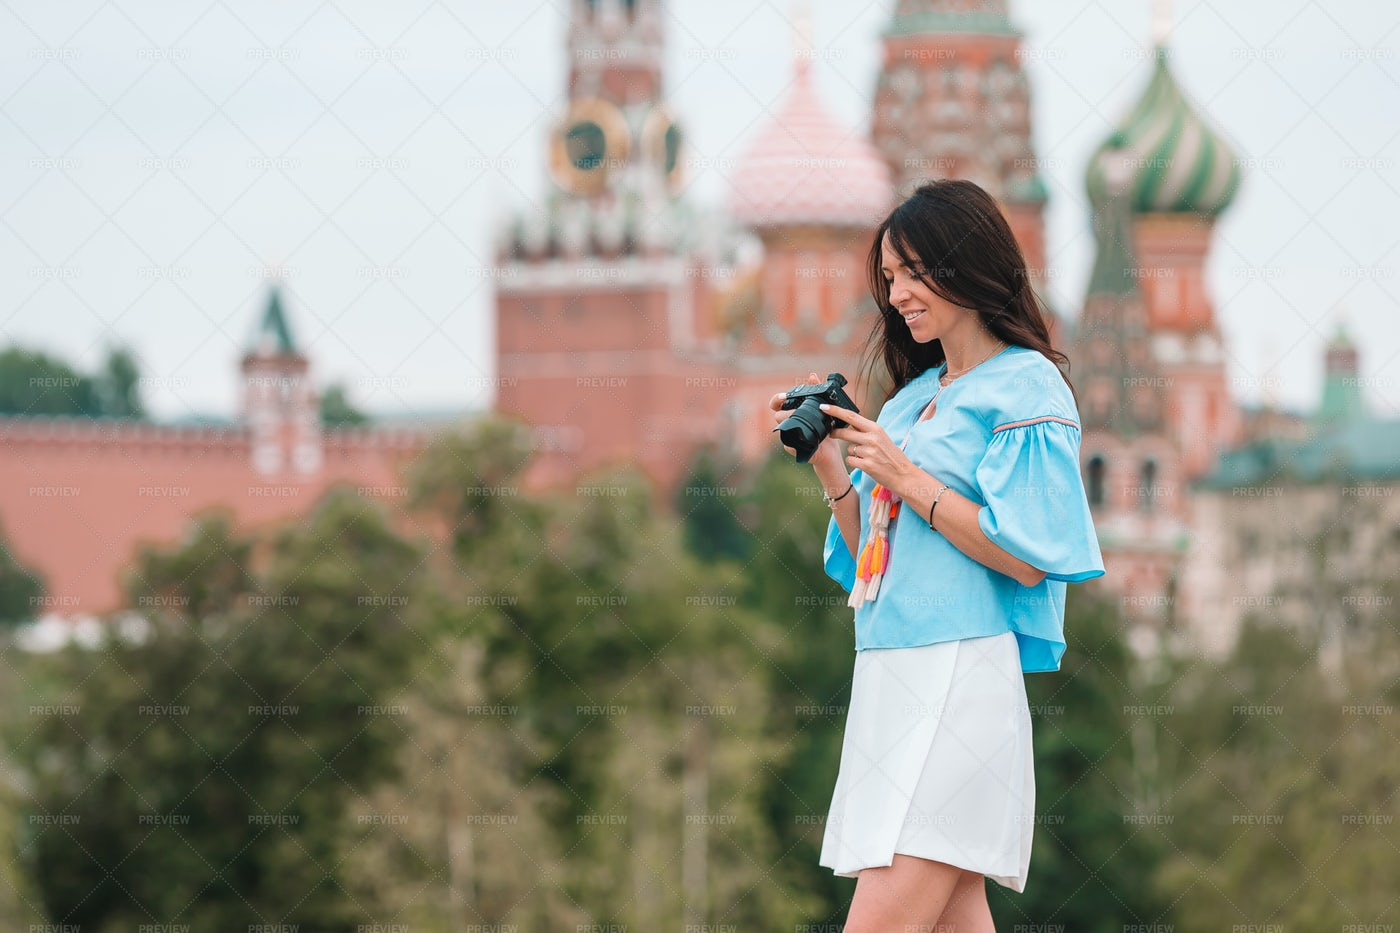 Tourist In Red Square: Stock Photos